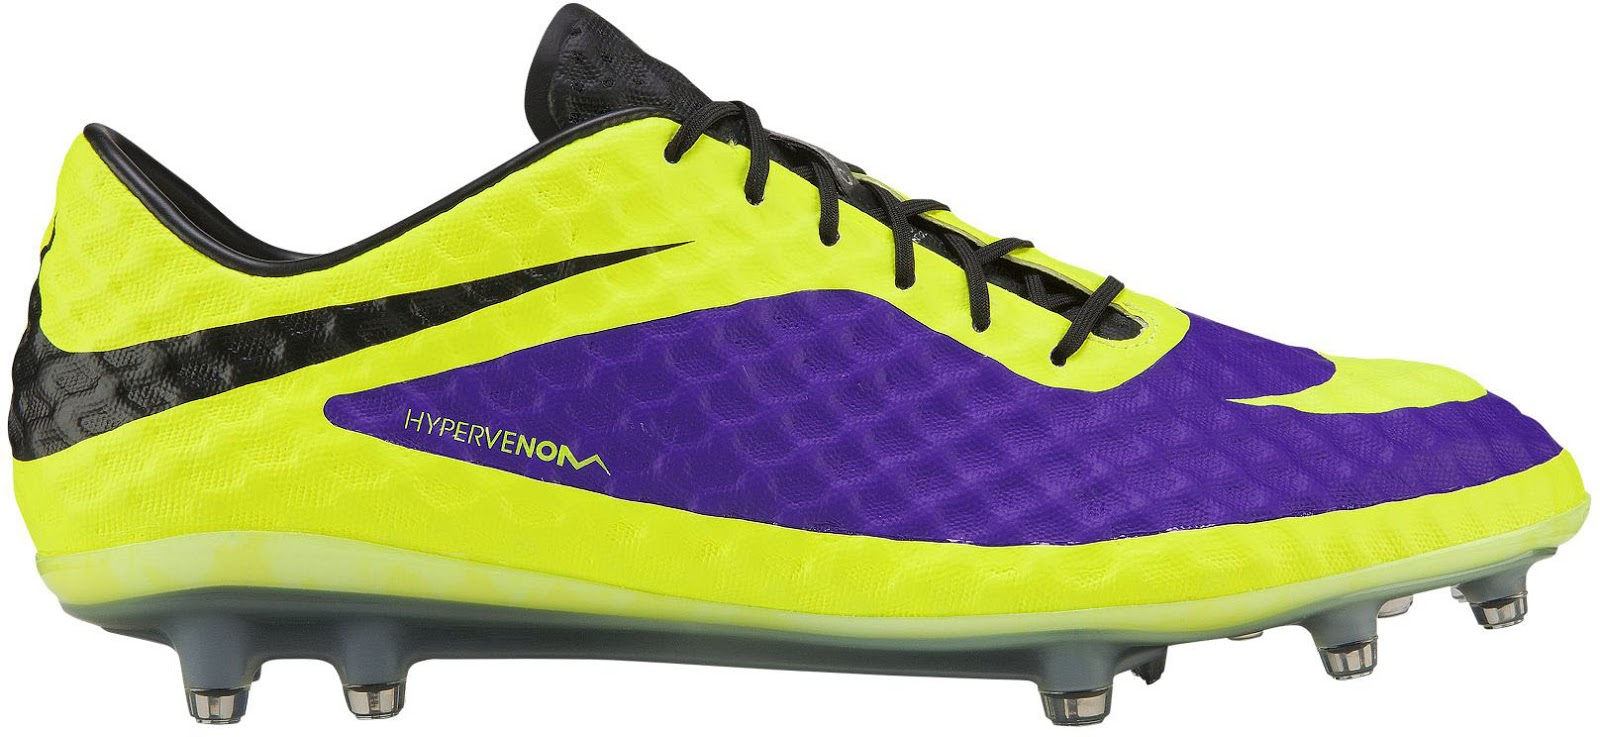 0f763402fccc Best Football Boots Of All Time